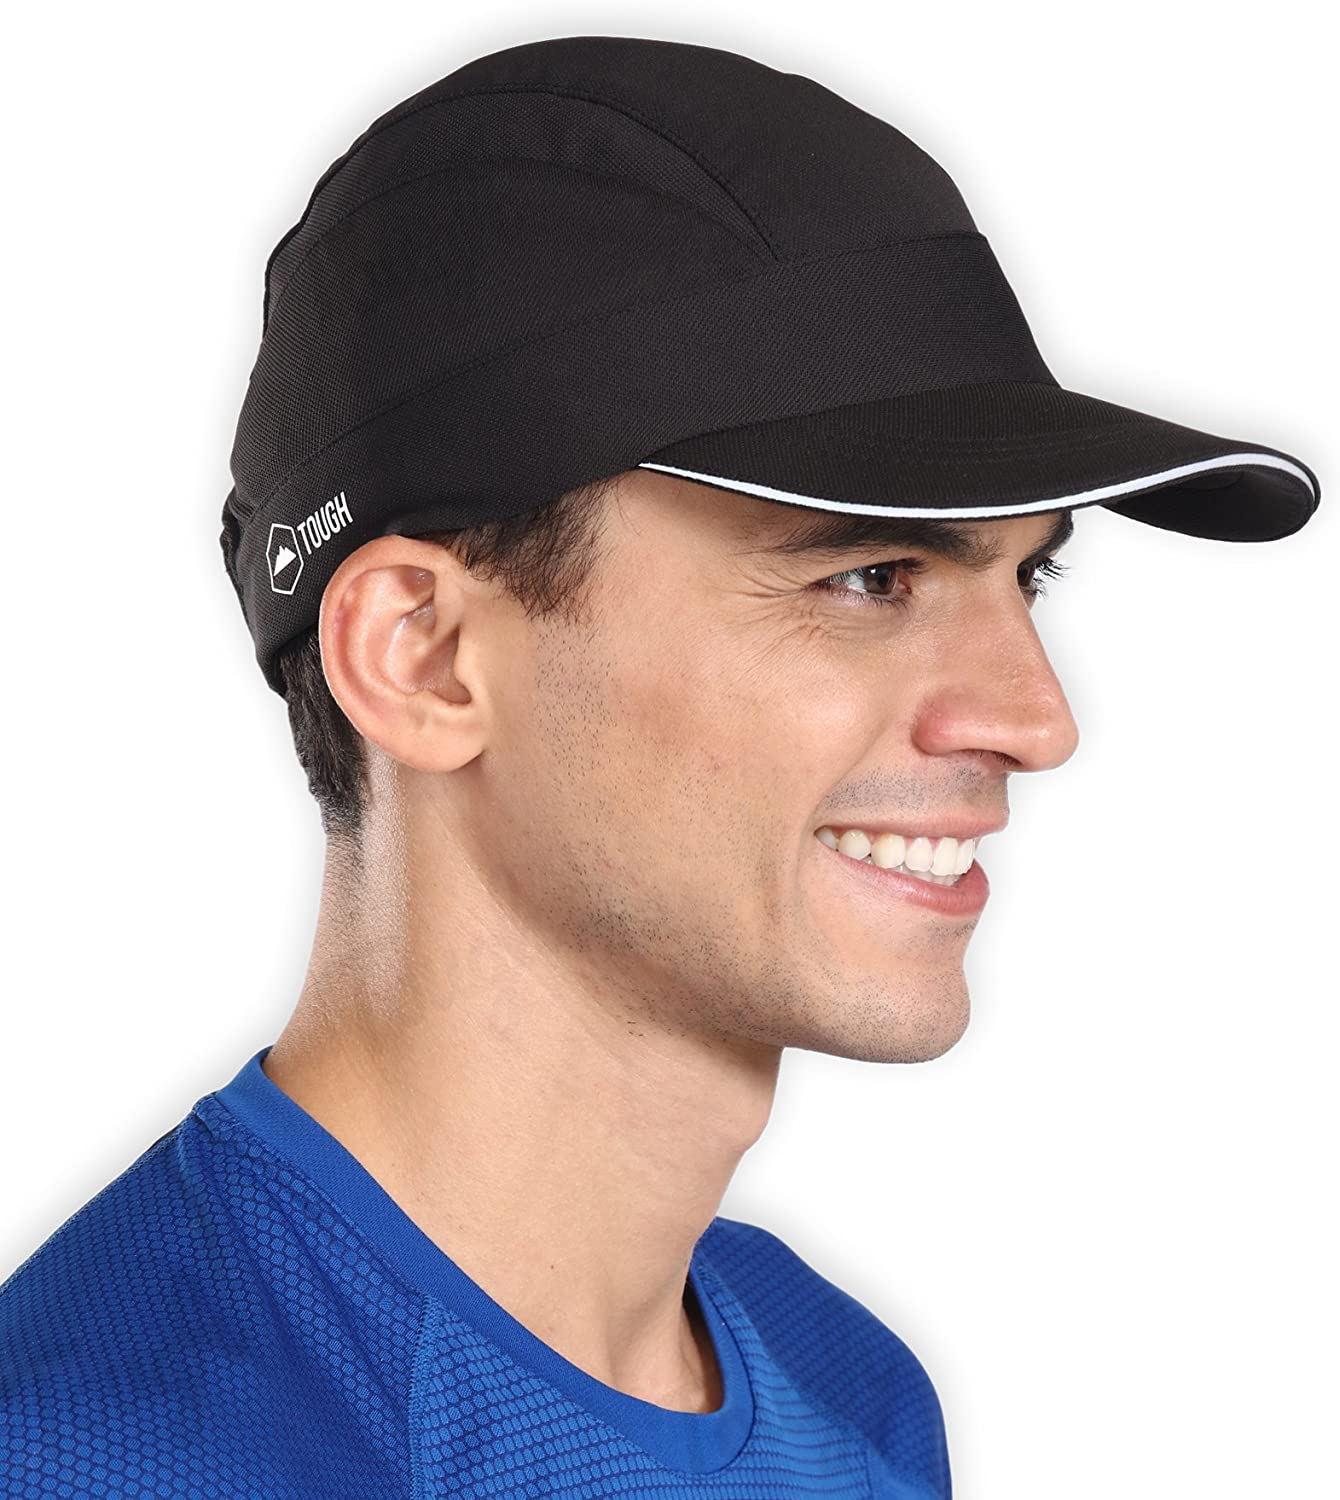 Running Hat - UV Protection Reflective Sports Sun Cap for Men & Women - Adjustable, Cooling, Breathable & Quick Dry